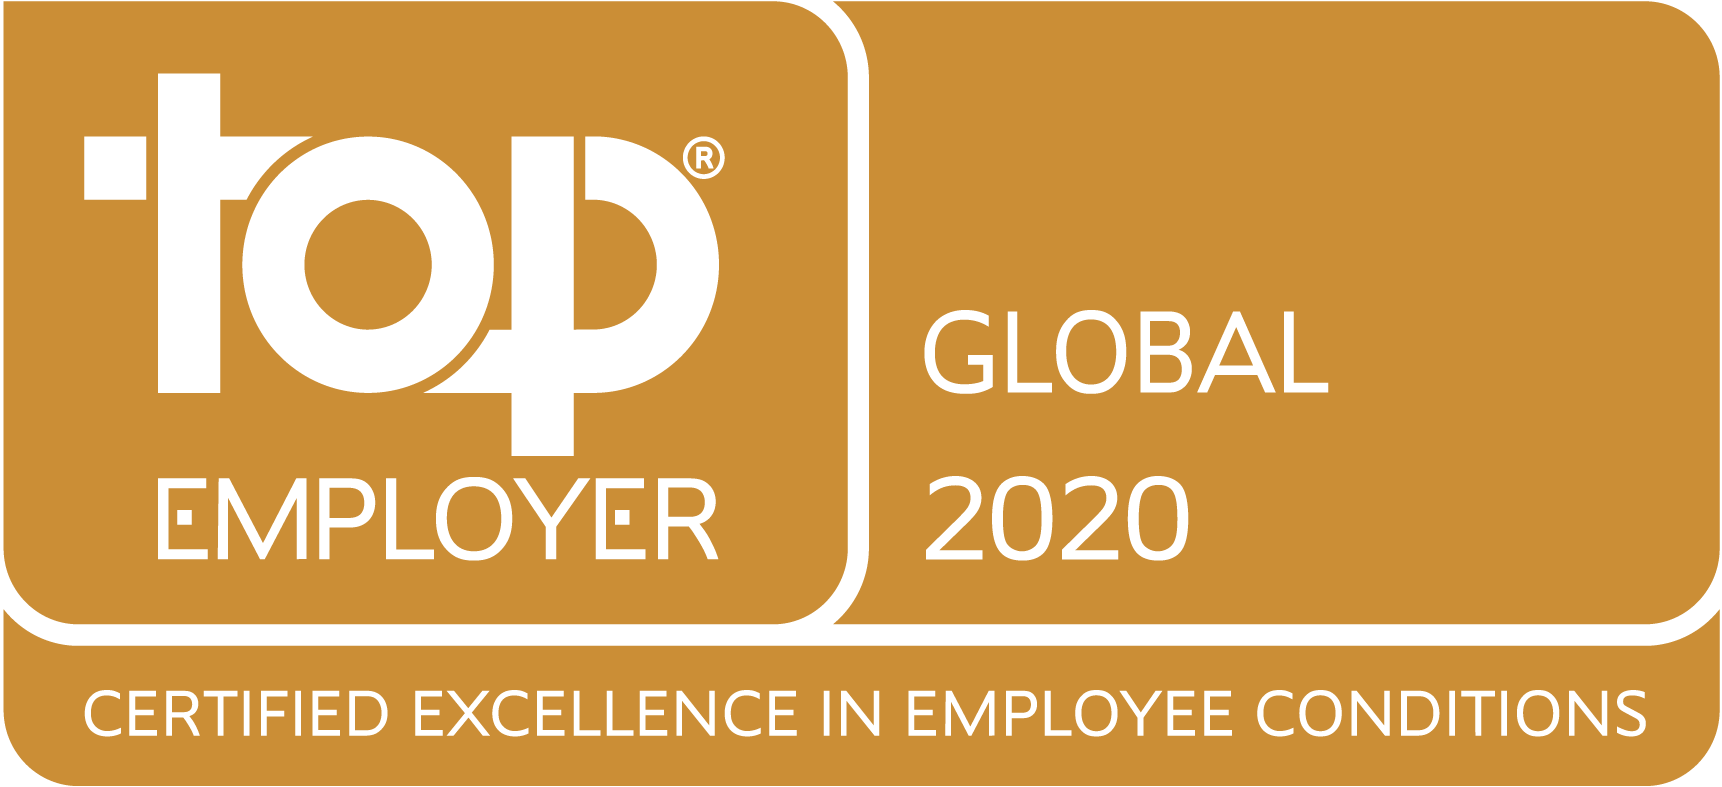 Top Employer Global 2020 - Certified Excellence in Employee Conditions